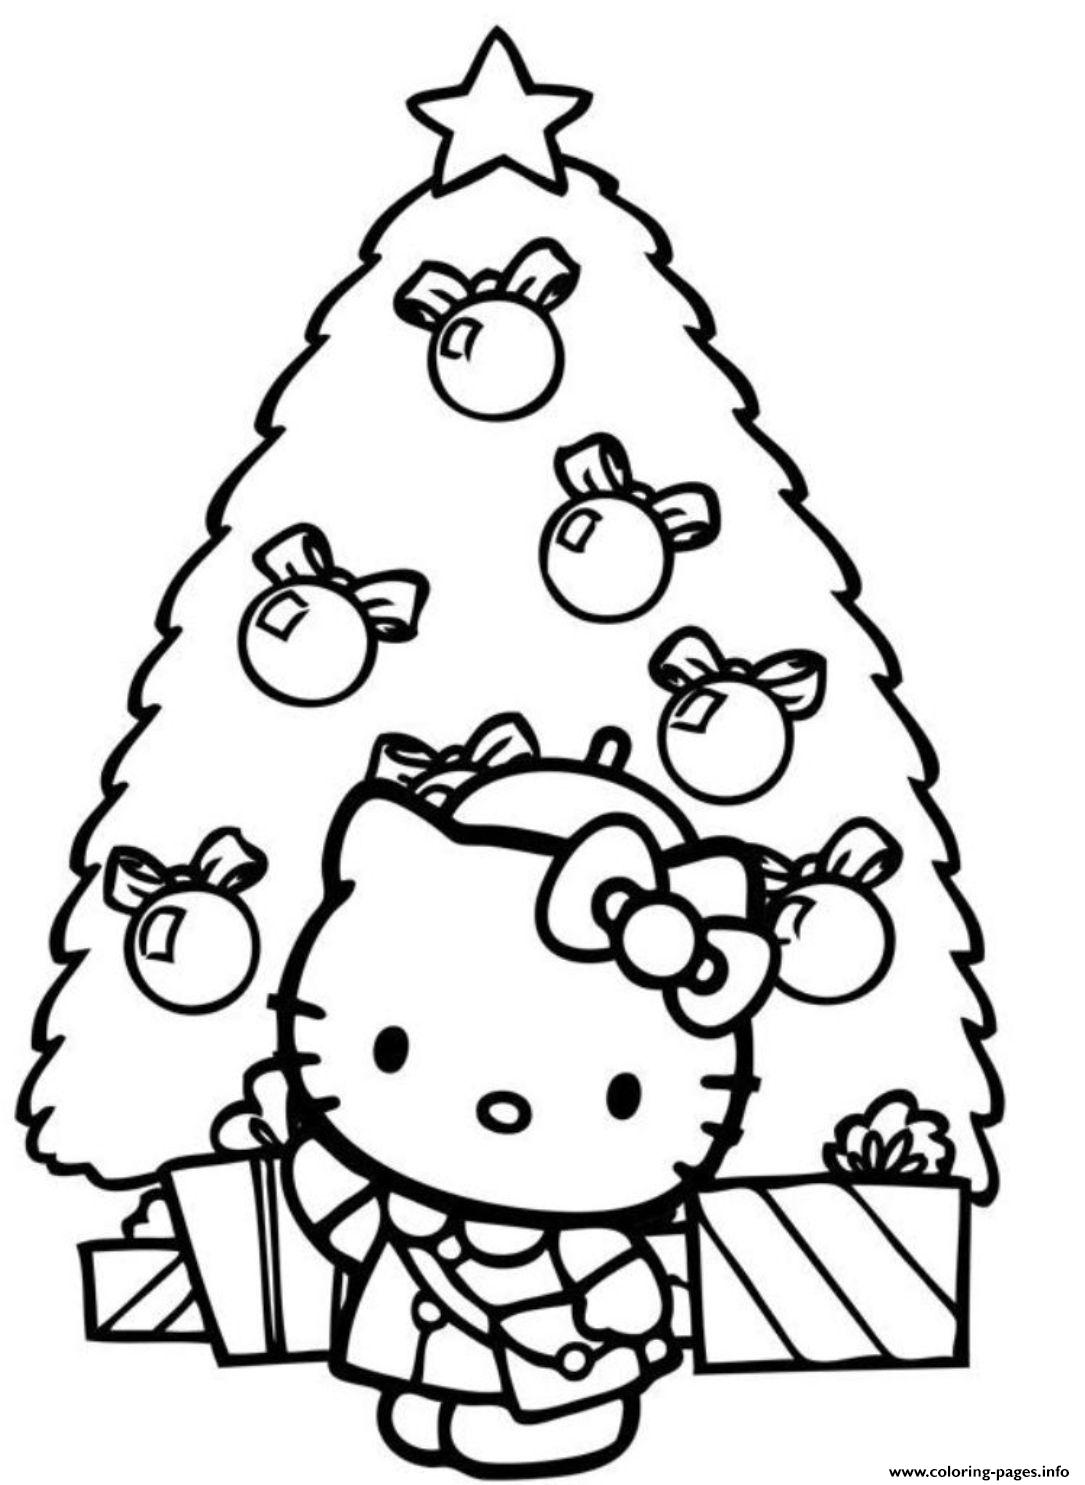 Christmas Tree Hello Kitty coloring pages